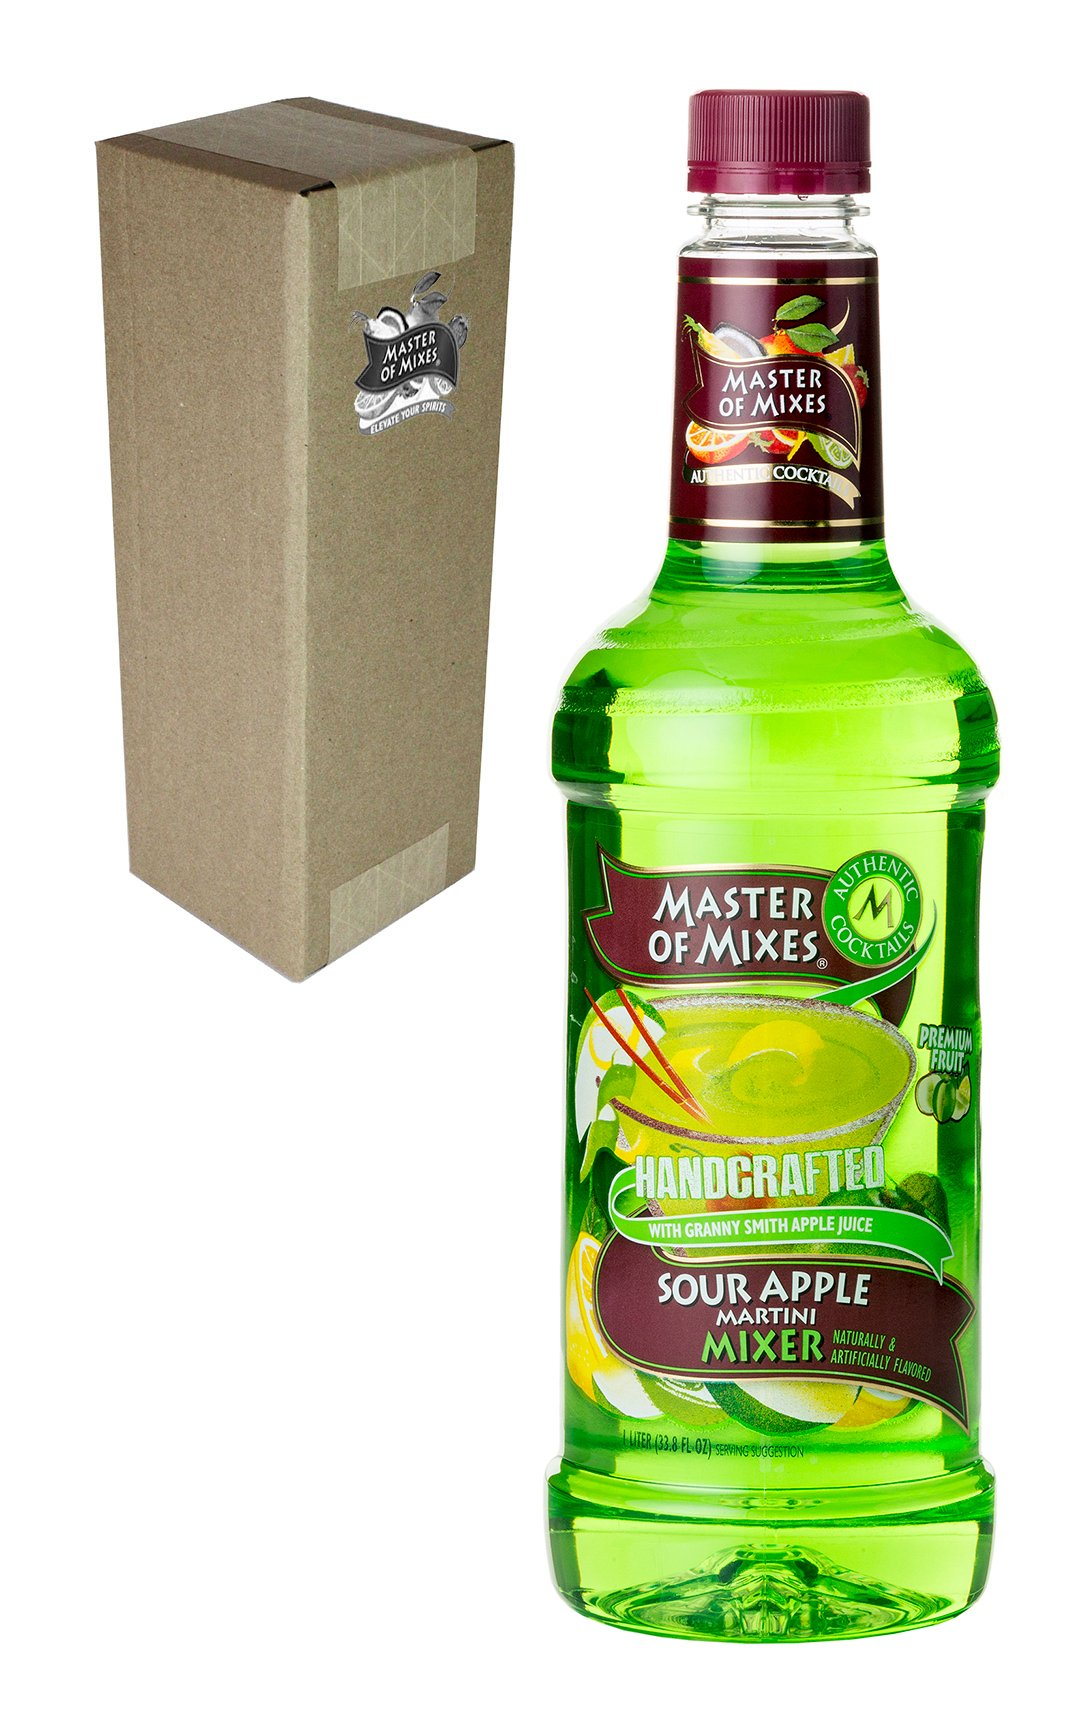 Master of Mixes Sour Apple Martini Drink Mix, Ready To Use, 1 Liter Bottle (33.8 Fl Oz), Individually Boxed by Master of Mixes